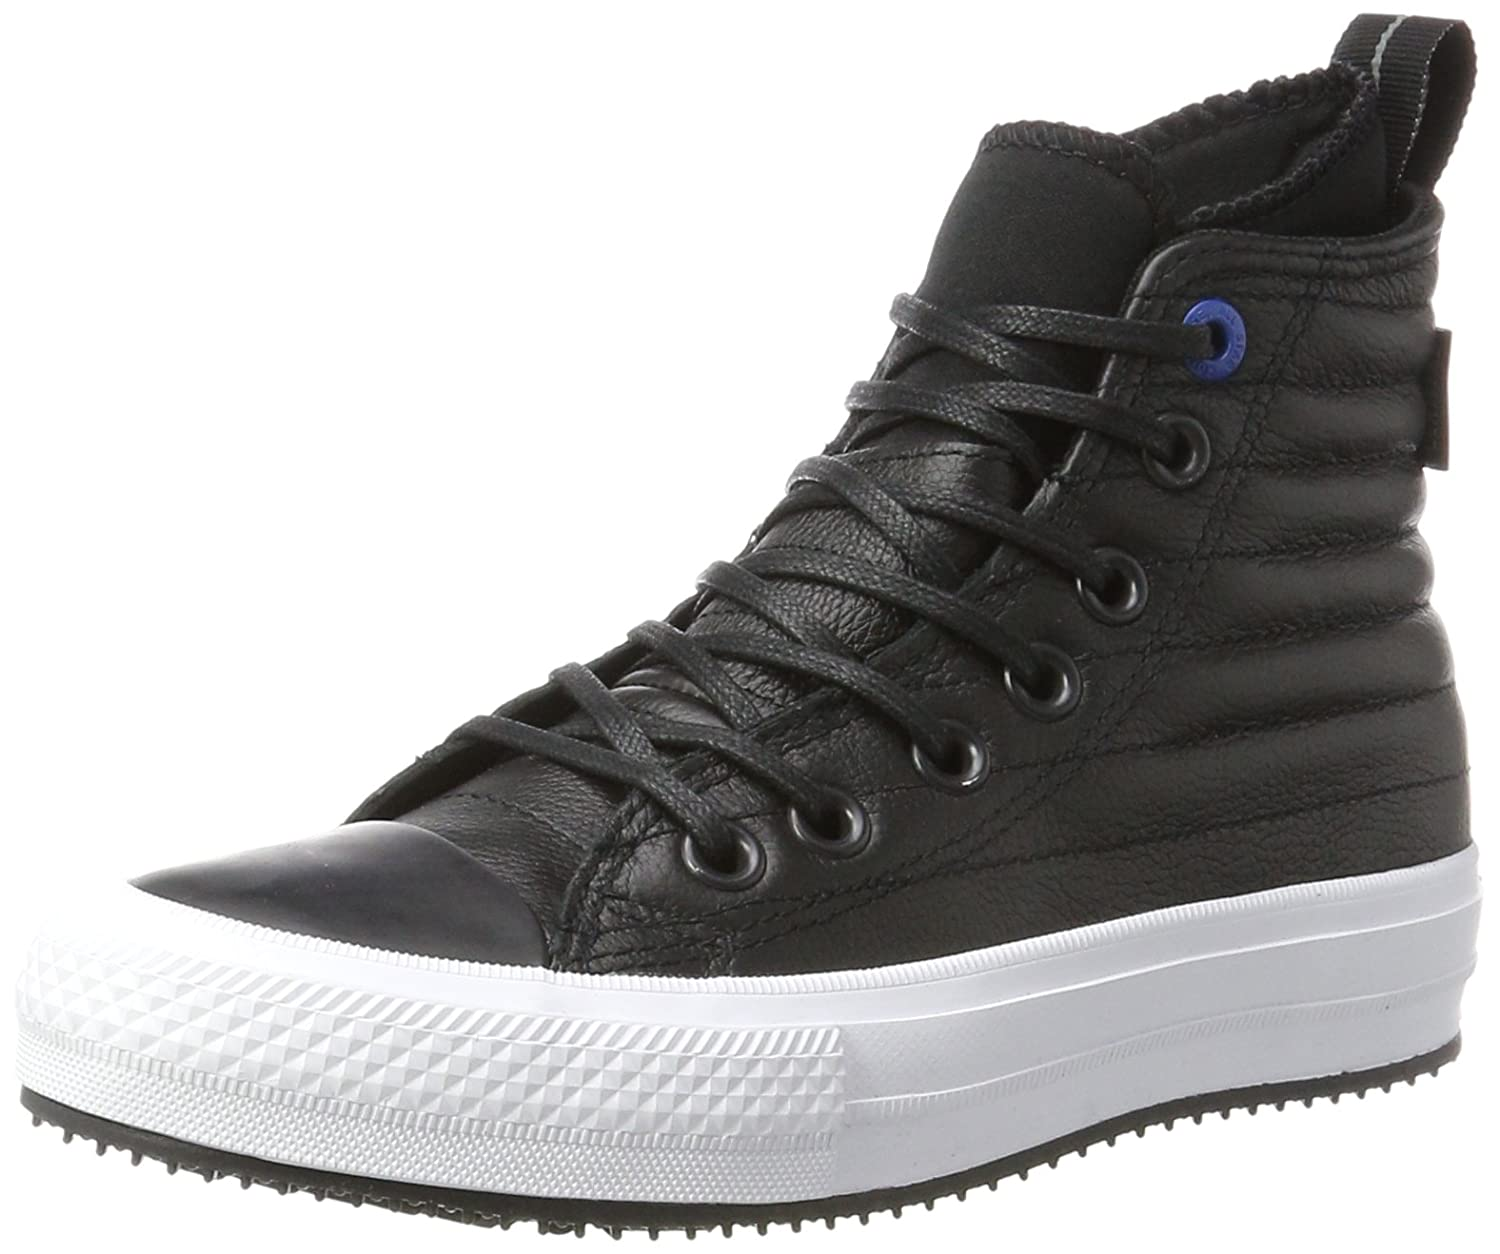 Adultes Unisexe Chuck Taylor All Star Formateurs Salut-top Pc De Démarrage, Converse Noir